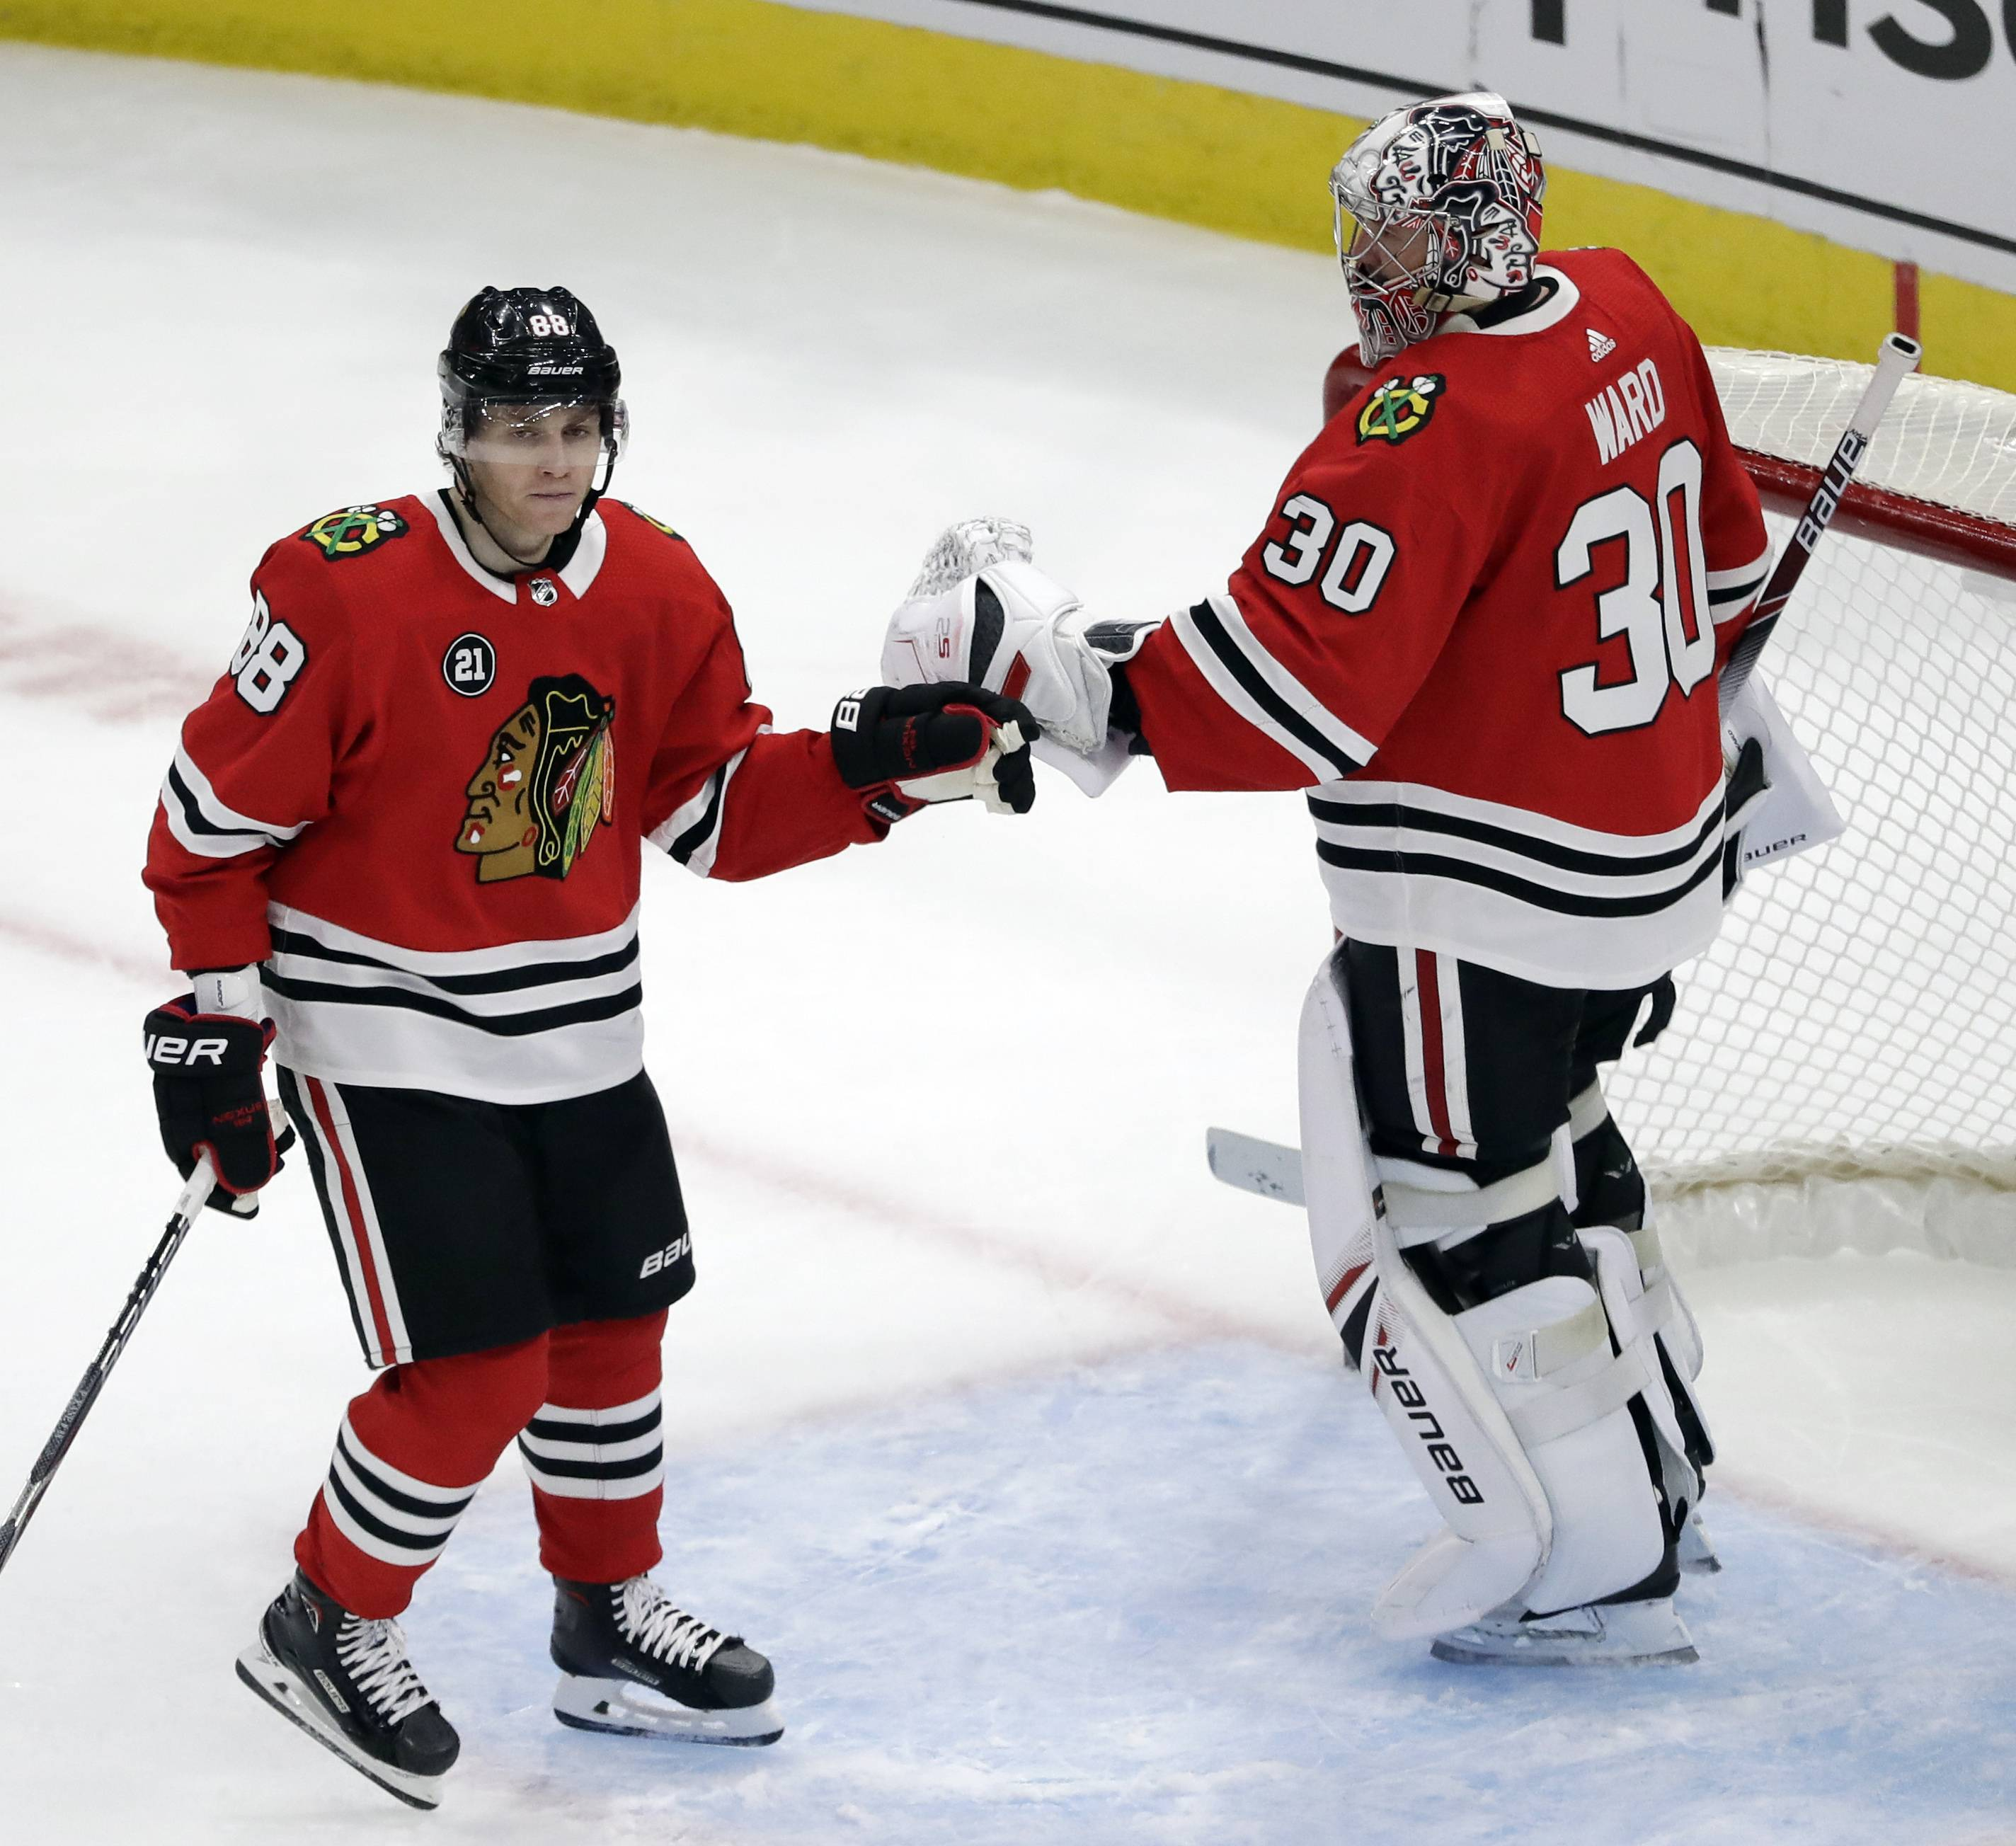 Chicago Blackhawks right wing Patrick Kane, left, celebrates with goalie Cam Ward after scoring a goal against the Detroit Red Wings during the third period of an NHL hockey game Sunday, Feb. 10, 2019, in Chicago. The Blackhawks won 5-2.